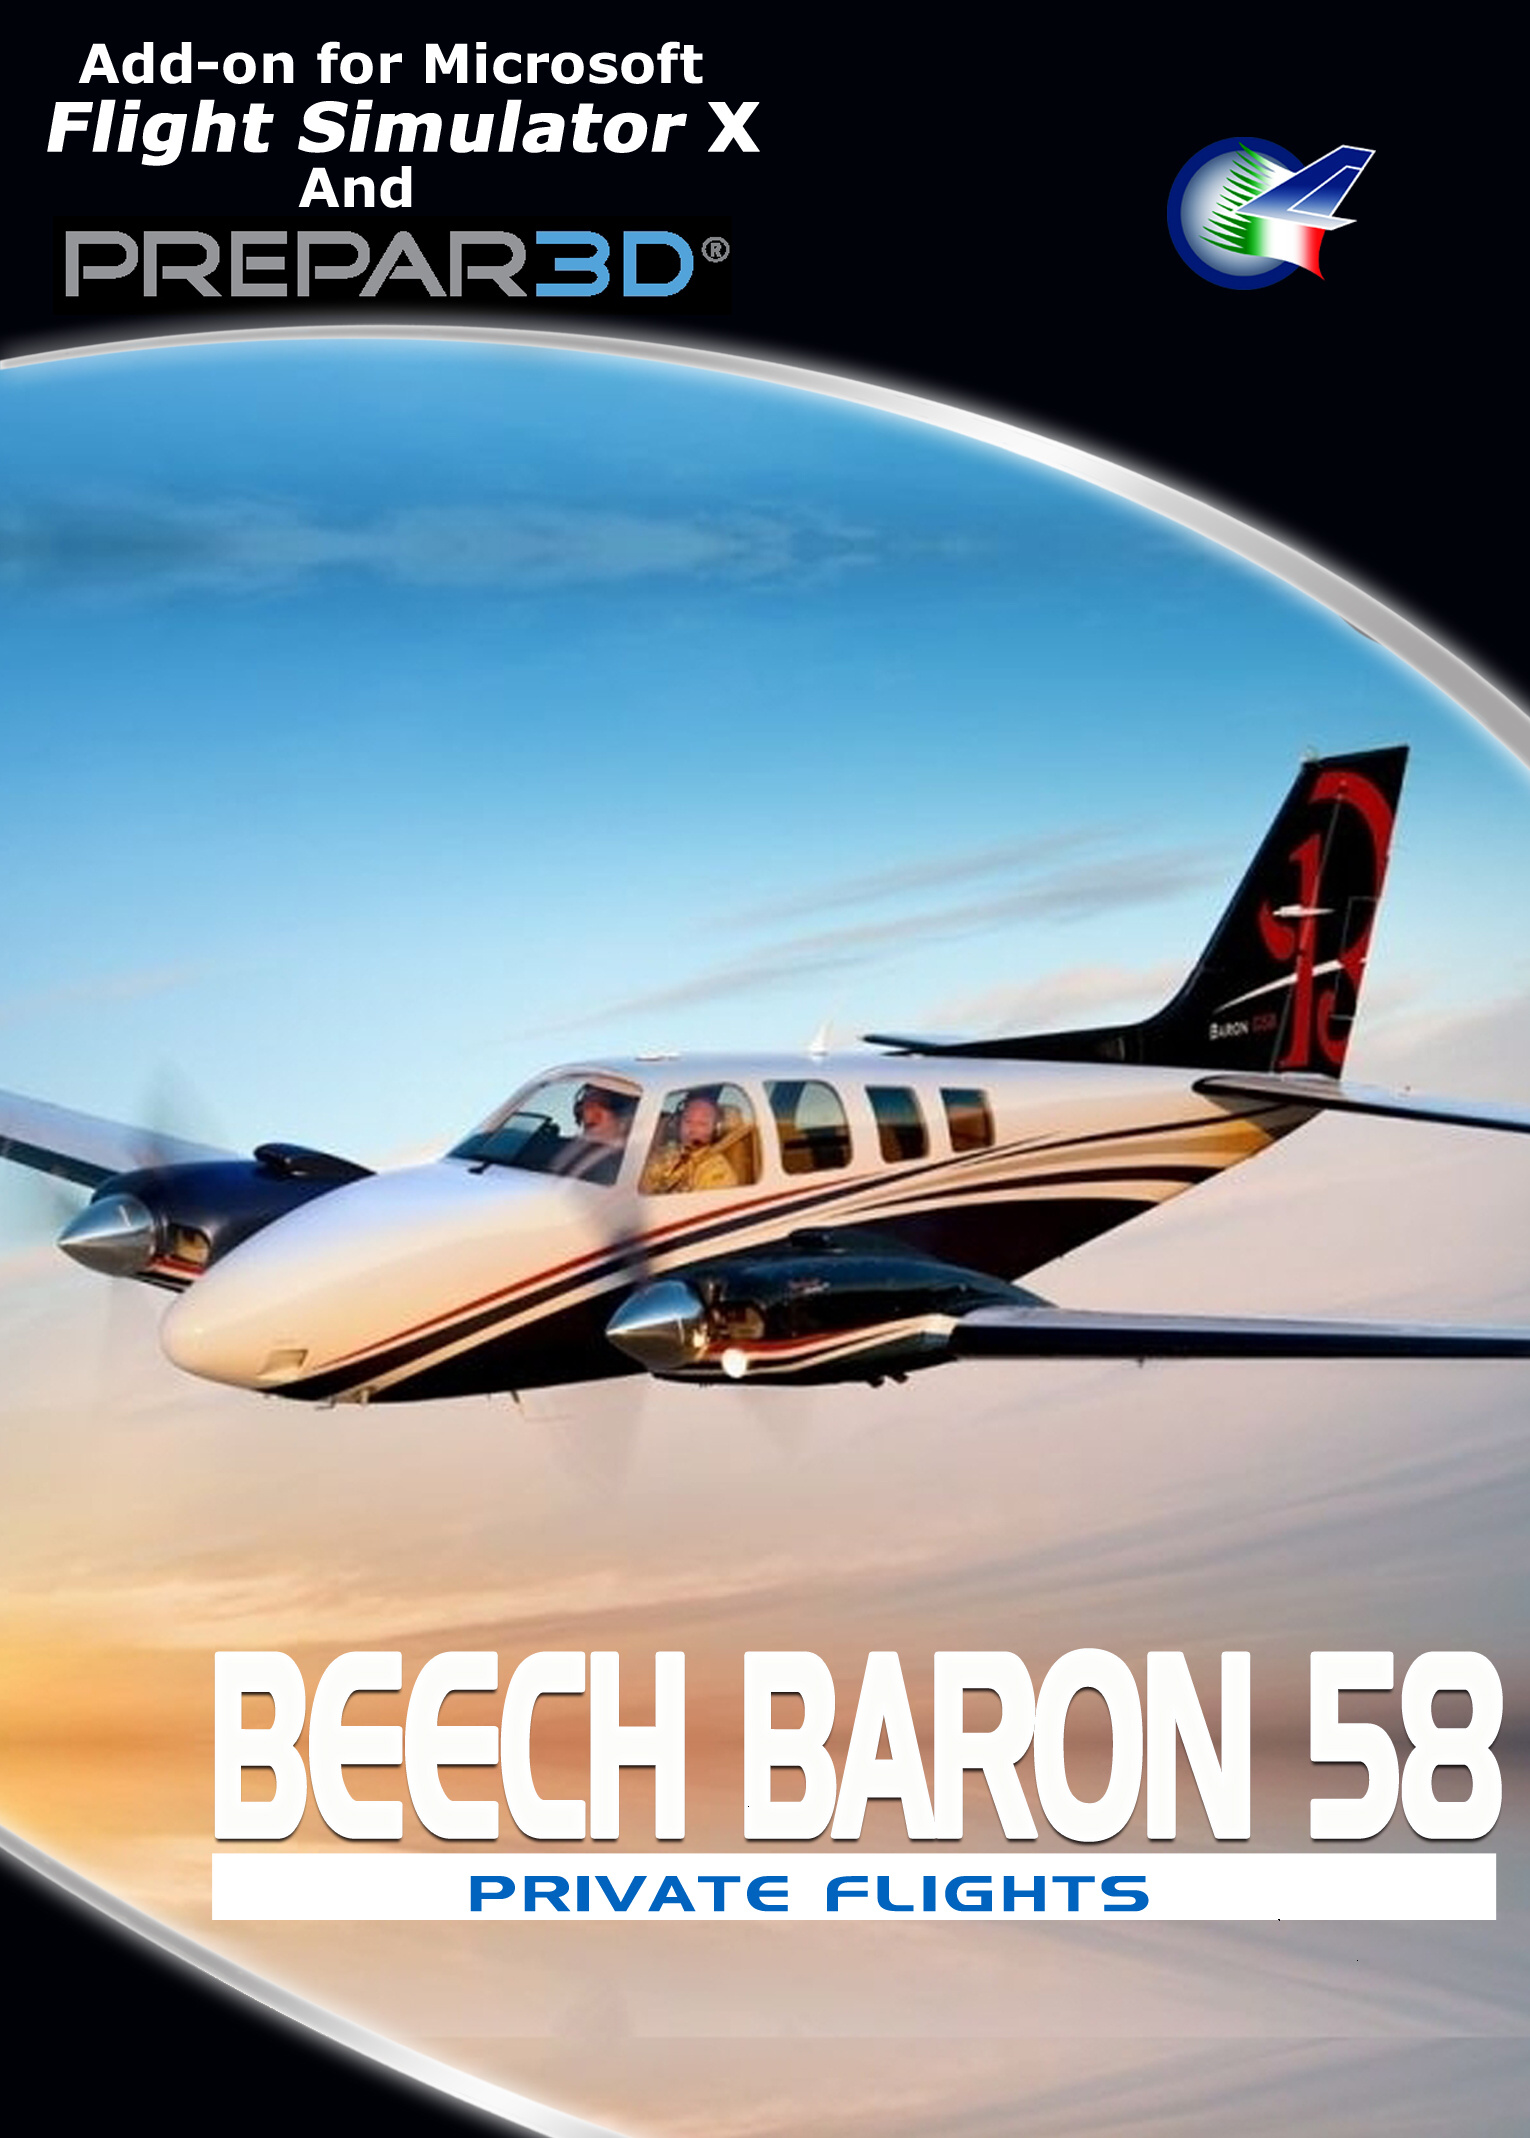 PERFECT FLIGHT - PRIVATE FLIGHTS - BEECH BARON 58 FSX P3D